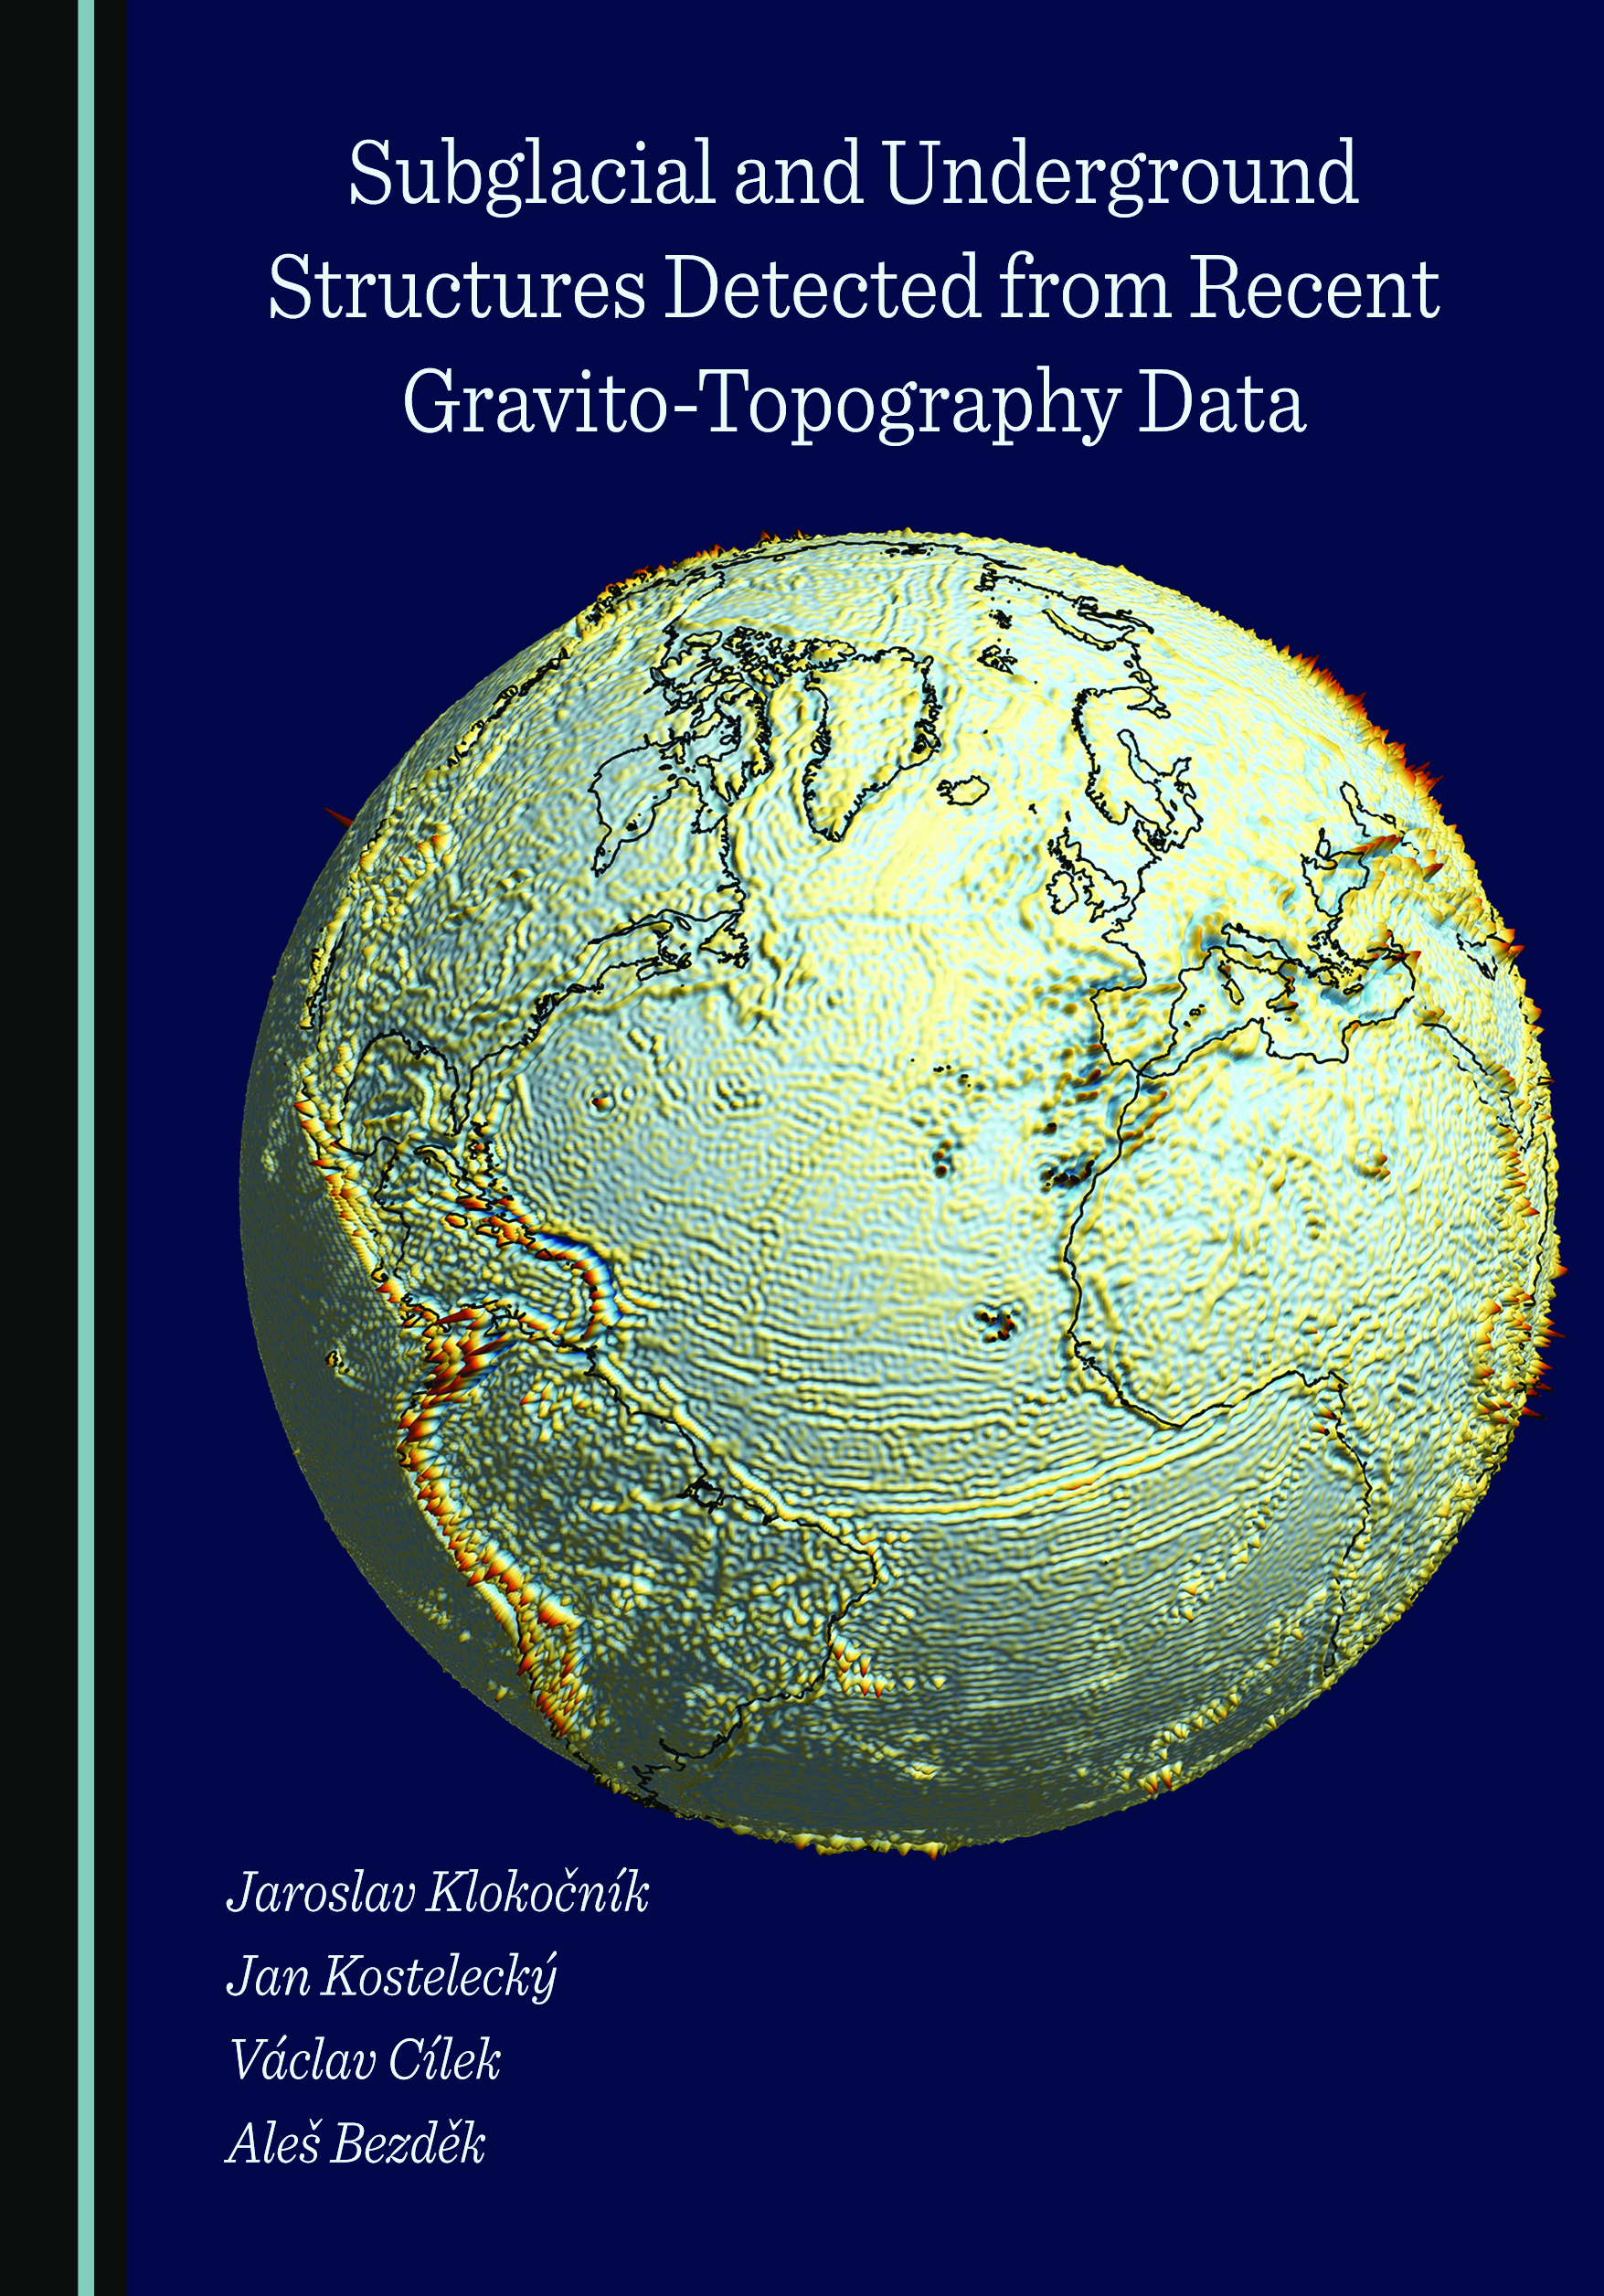 Subglacial and Underground Structures Detected from Recent Gravito-Topography Data